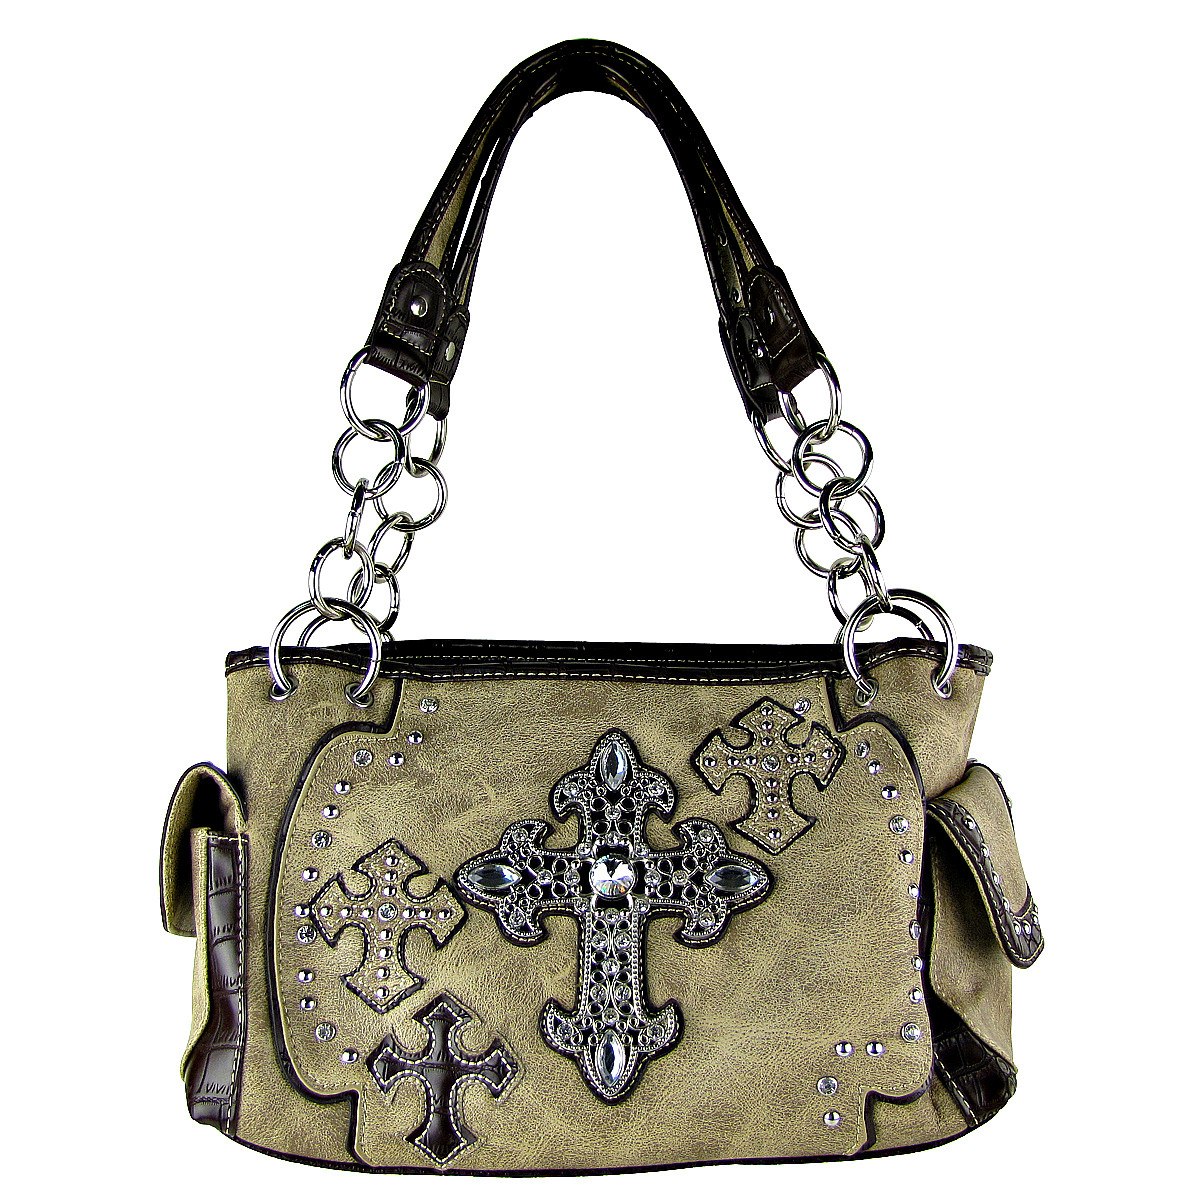 BEIGE WESTERN CROSSES LOOK SHOULDER HANDBAG HB1-CHF0016BEI